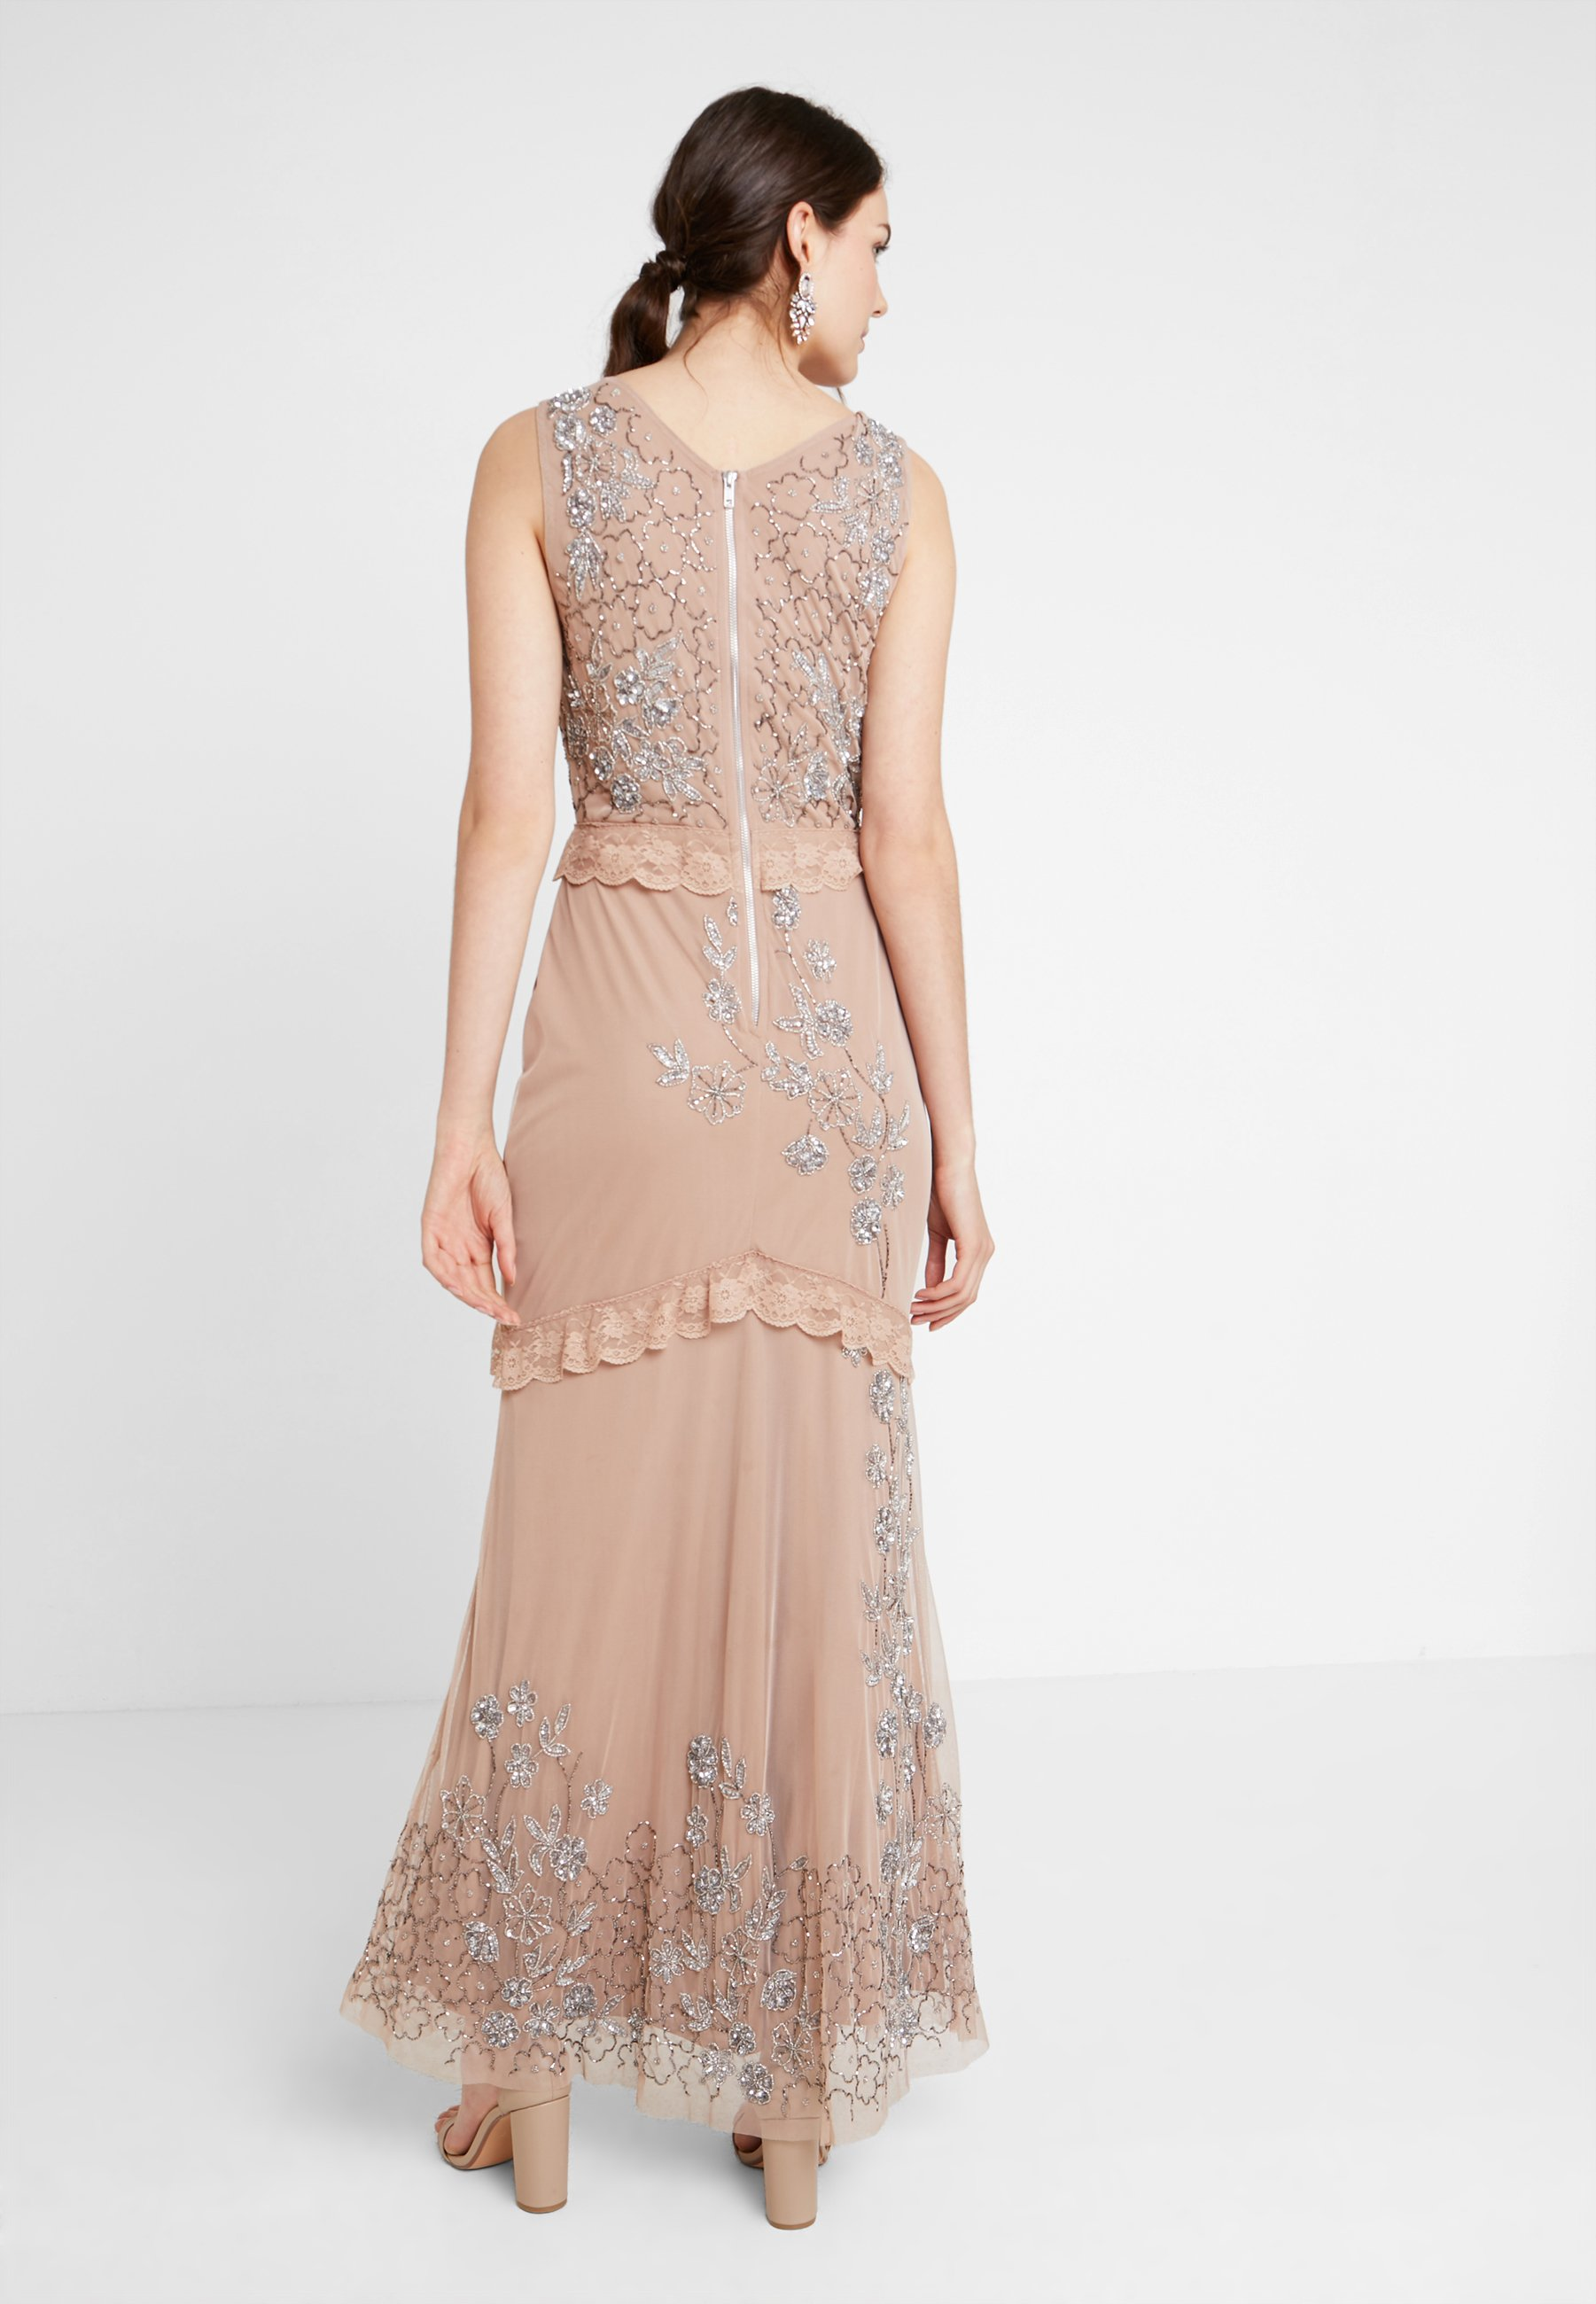 Placement Maya With Taupe Dress Deluxe Embellishment And DetailingRobe Neck Maxi De Cocktail Blush V bfY76gy